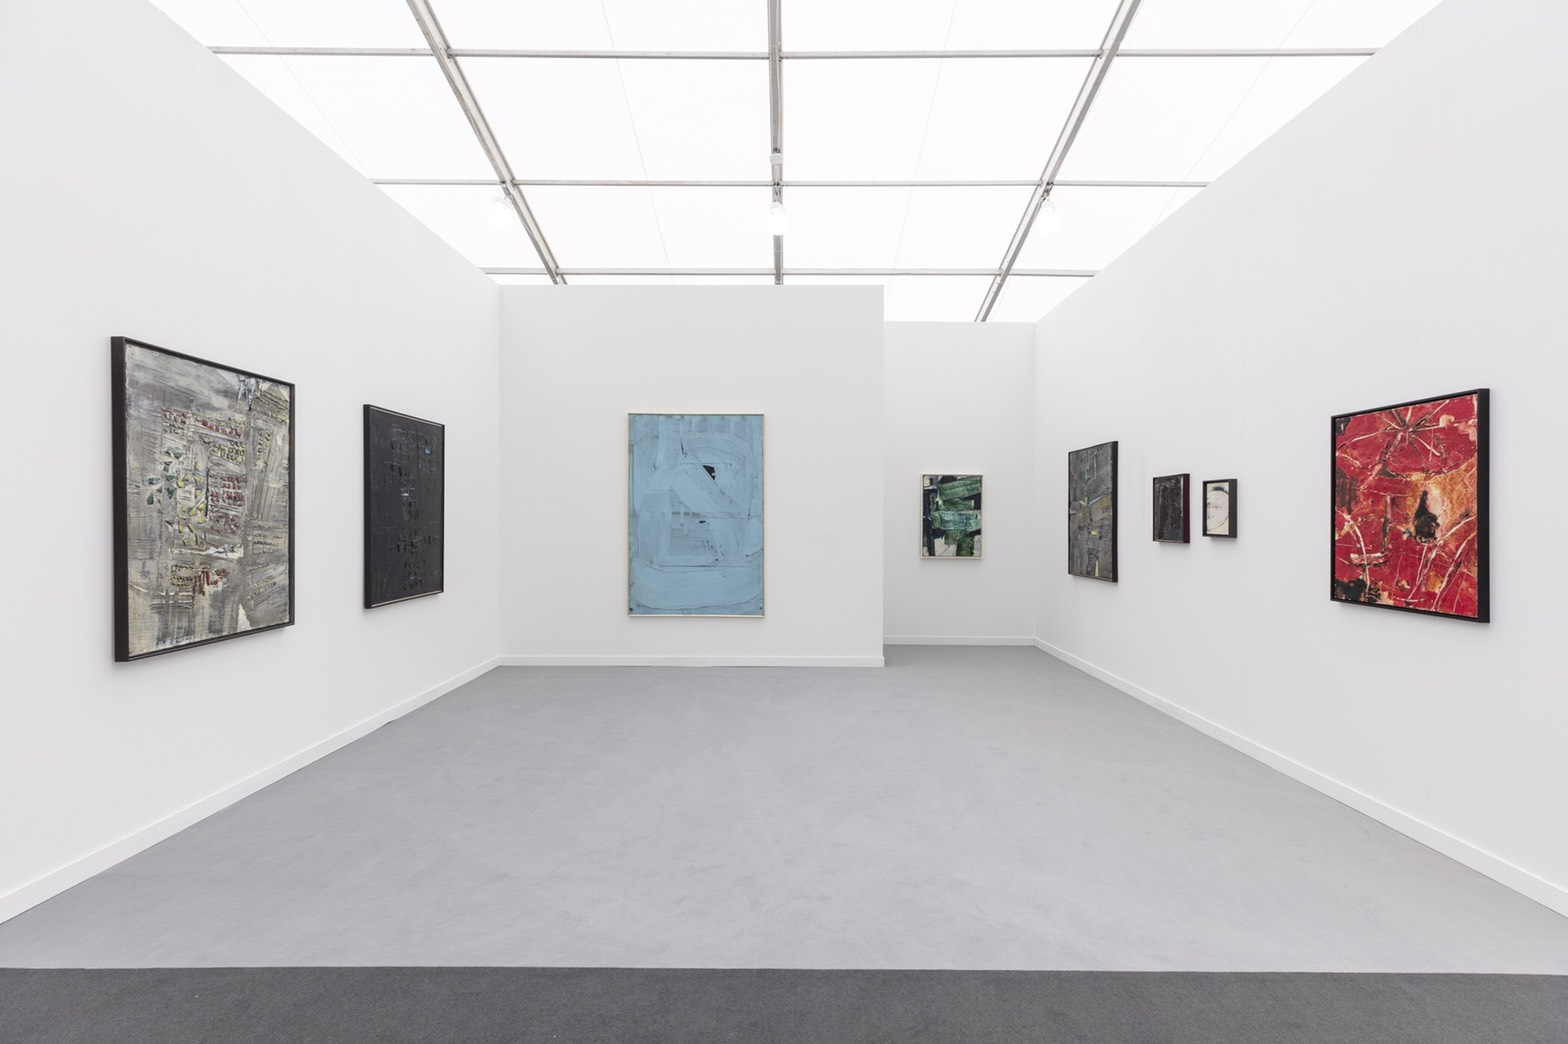 FRIEZE ART FAIR New York 2019にて、須田剋太作品を展示いたしました。  https://frieze.com/fairs/frieze-new-york  Booth: S16